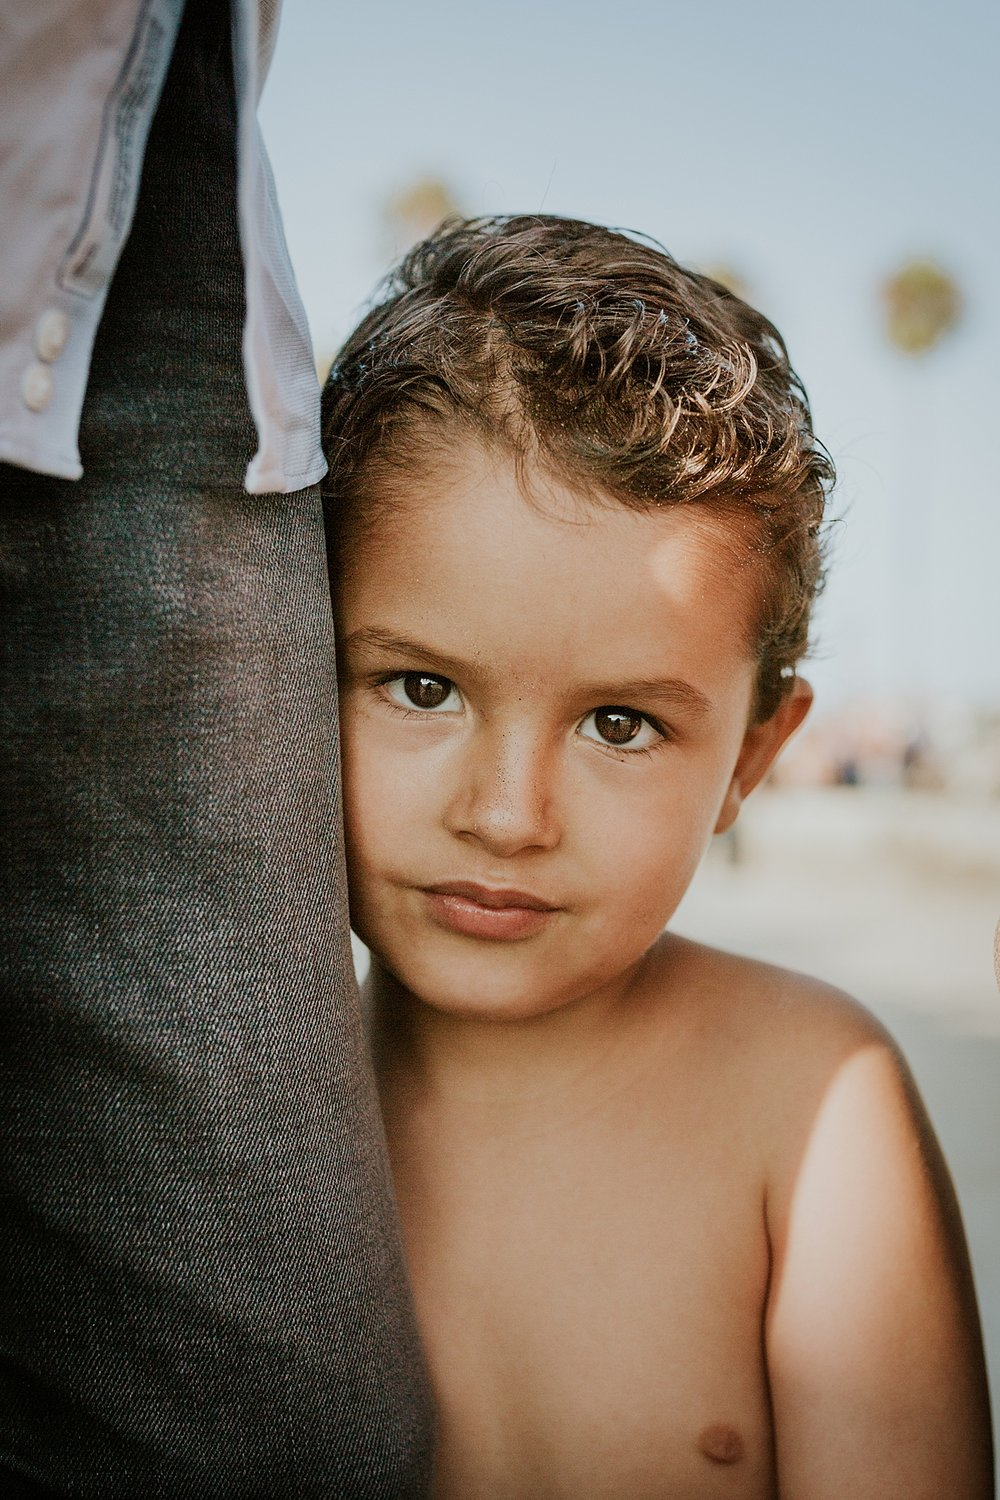 Orange County family photographer. Photo of young boy holding on to his dad's leg at Newport Beach Pier during outdoor family photo beach session